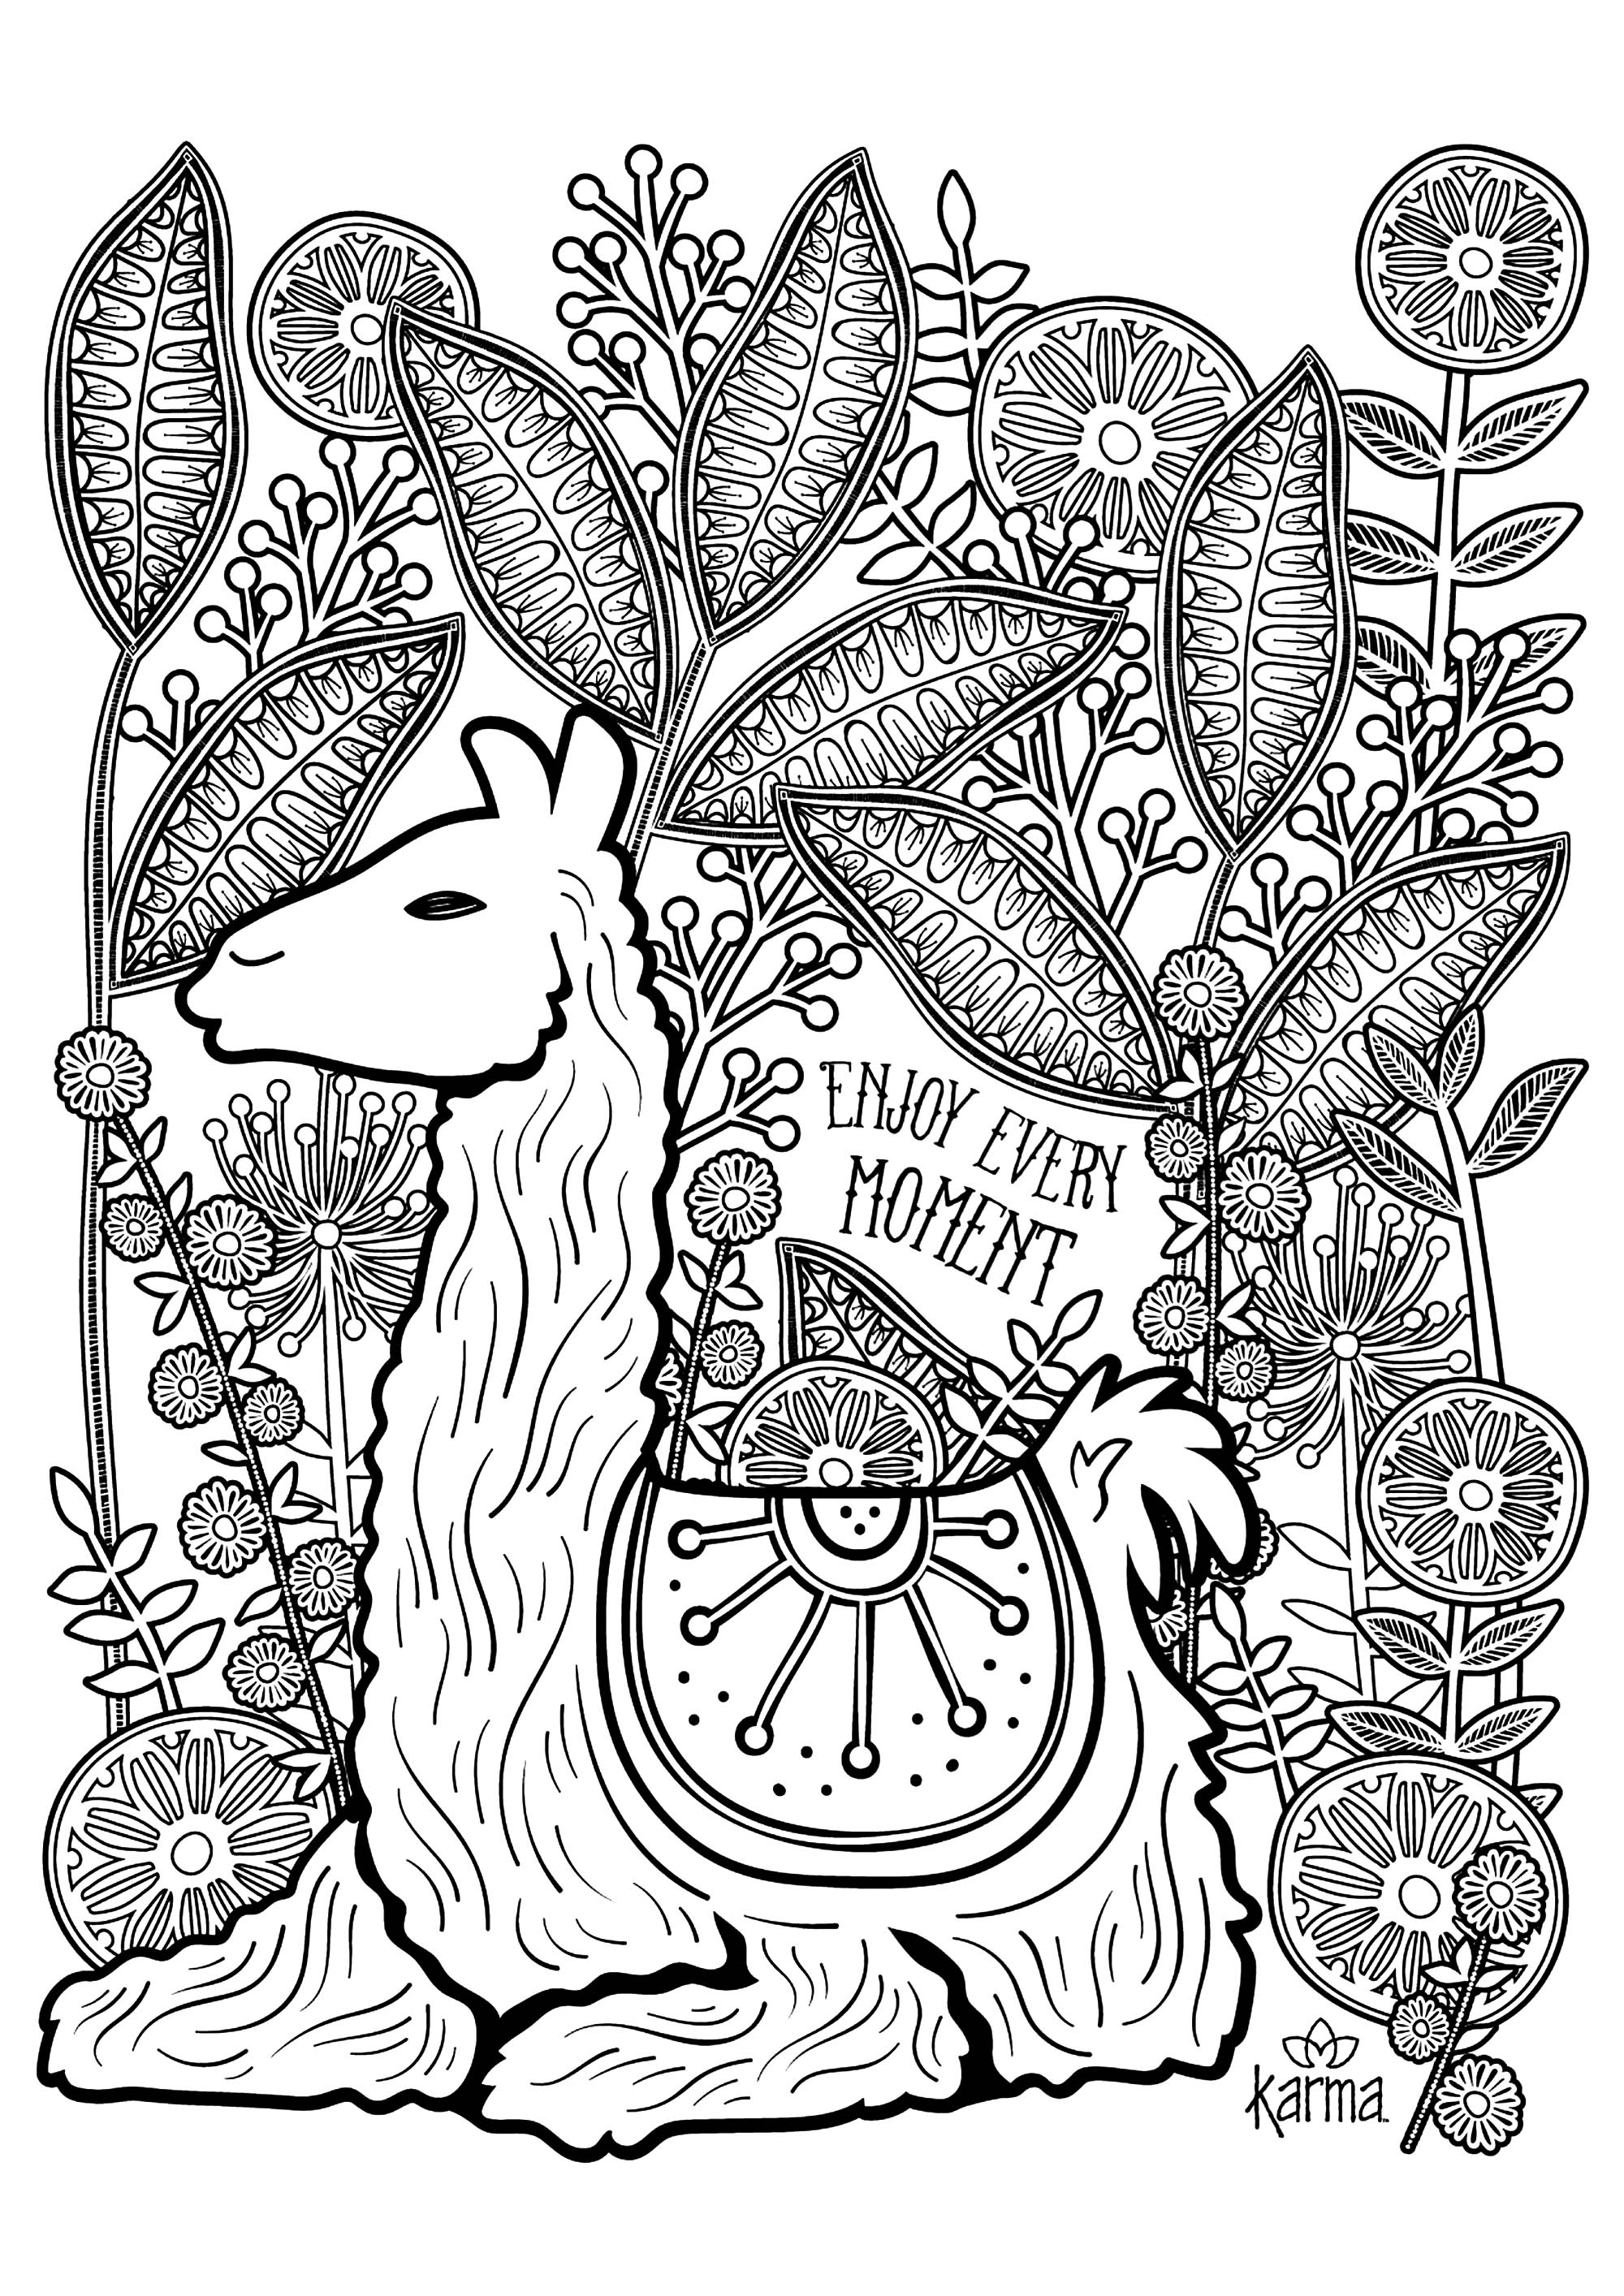 Llama to color with the text 'Enjoy every moment'